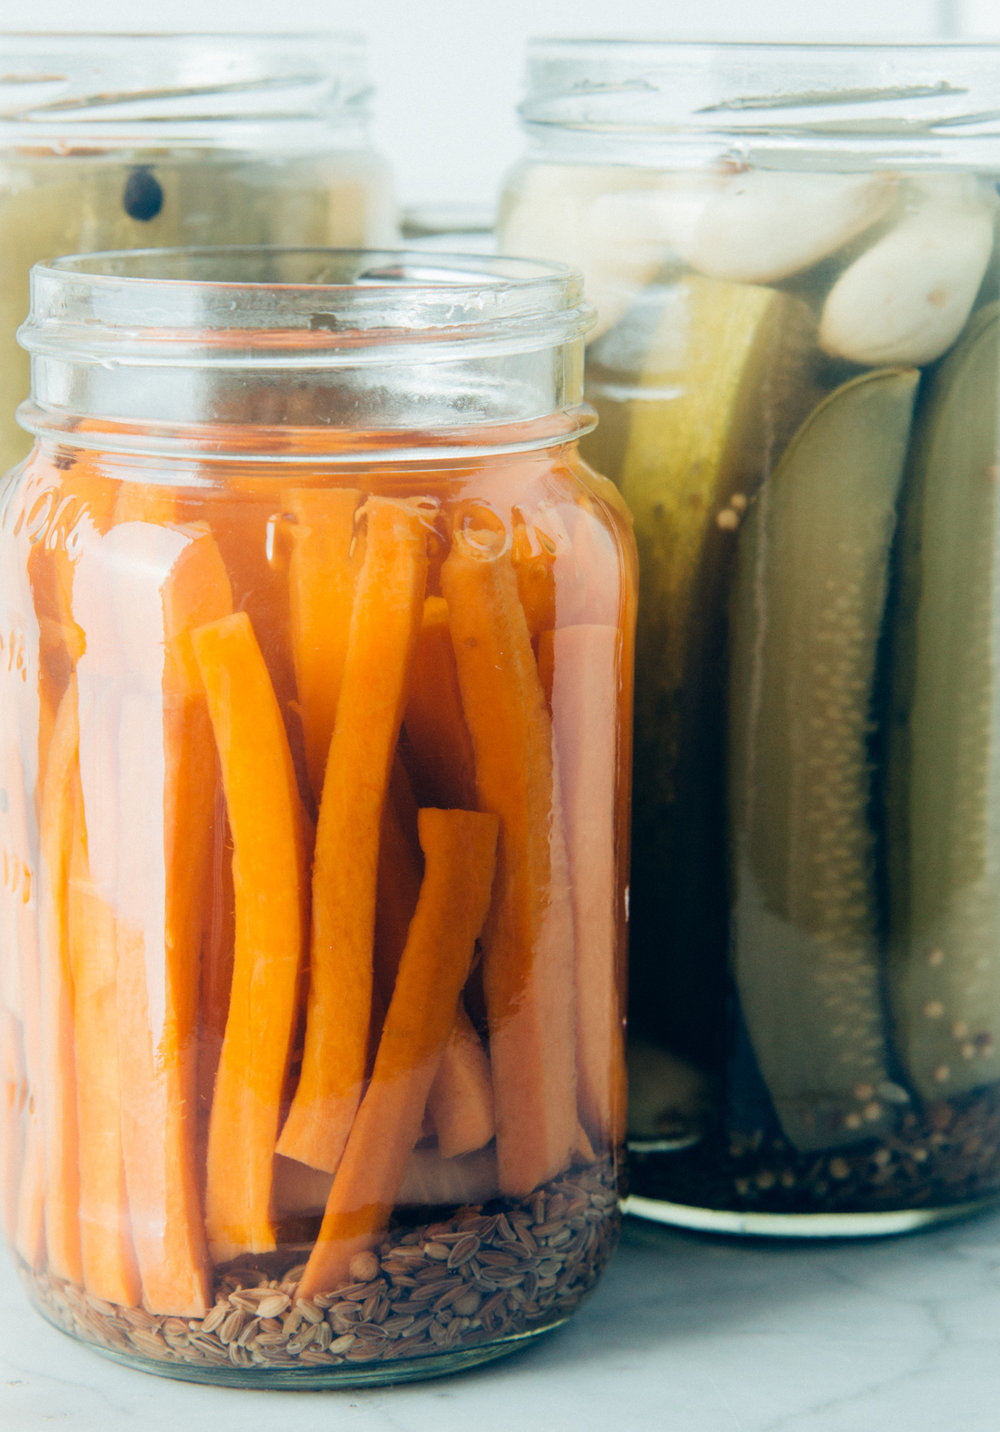 Classic pickled vegetables from local farmers.